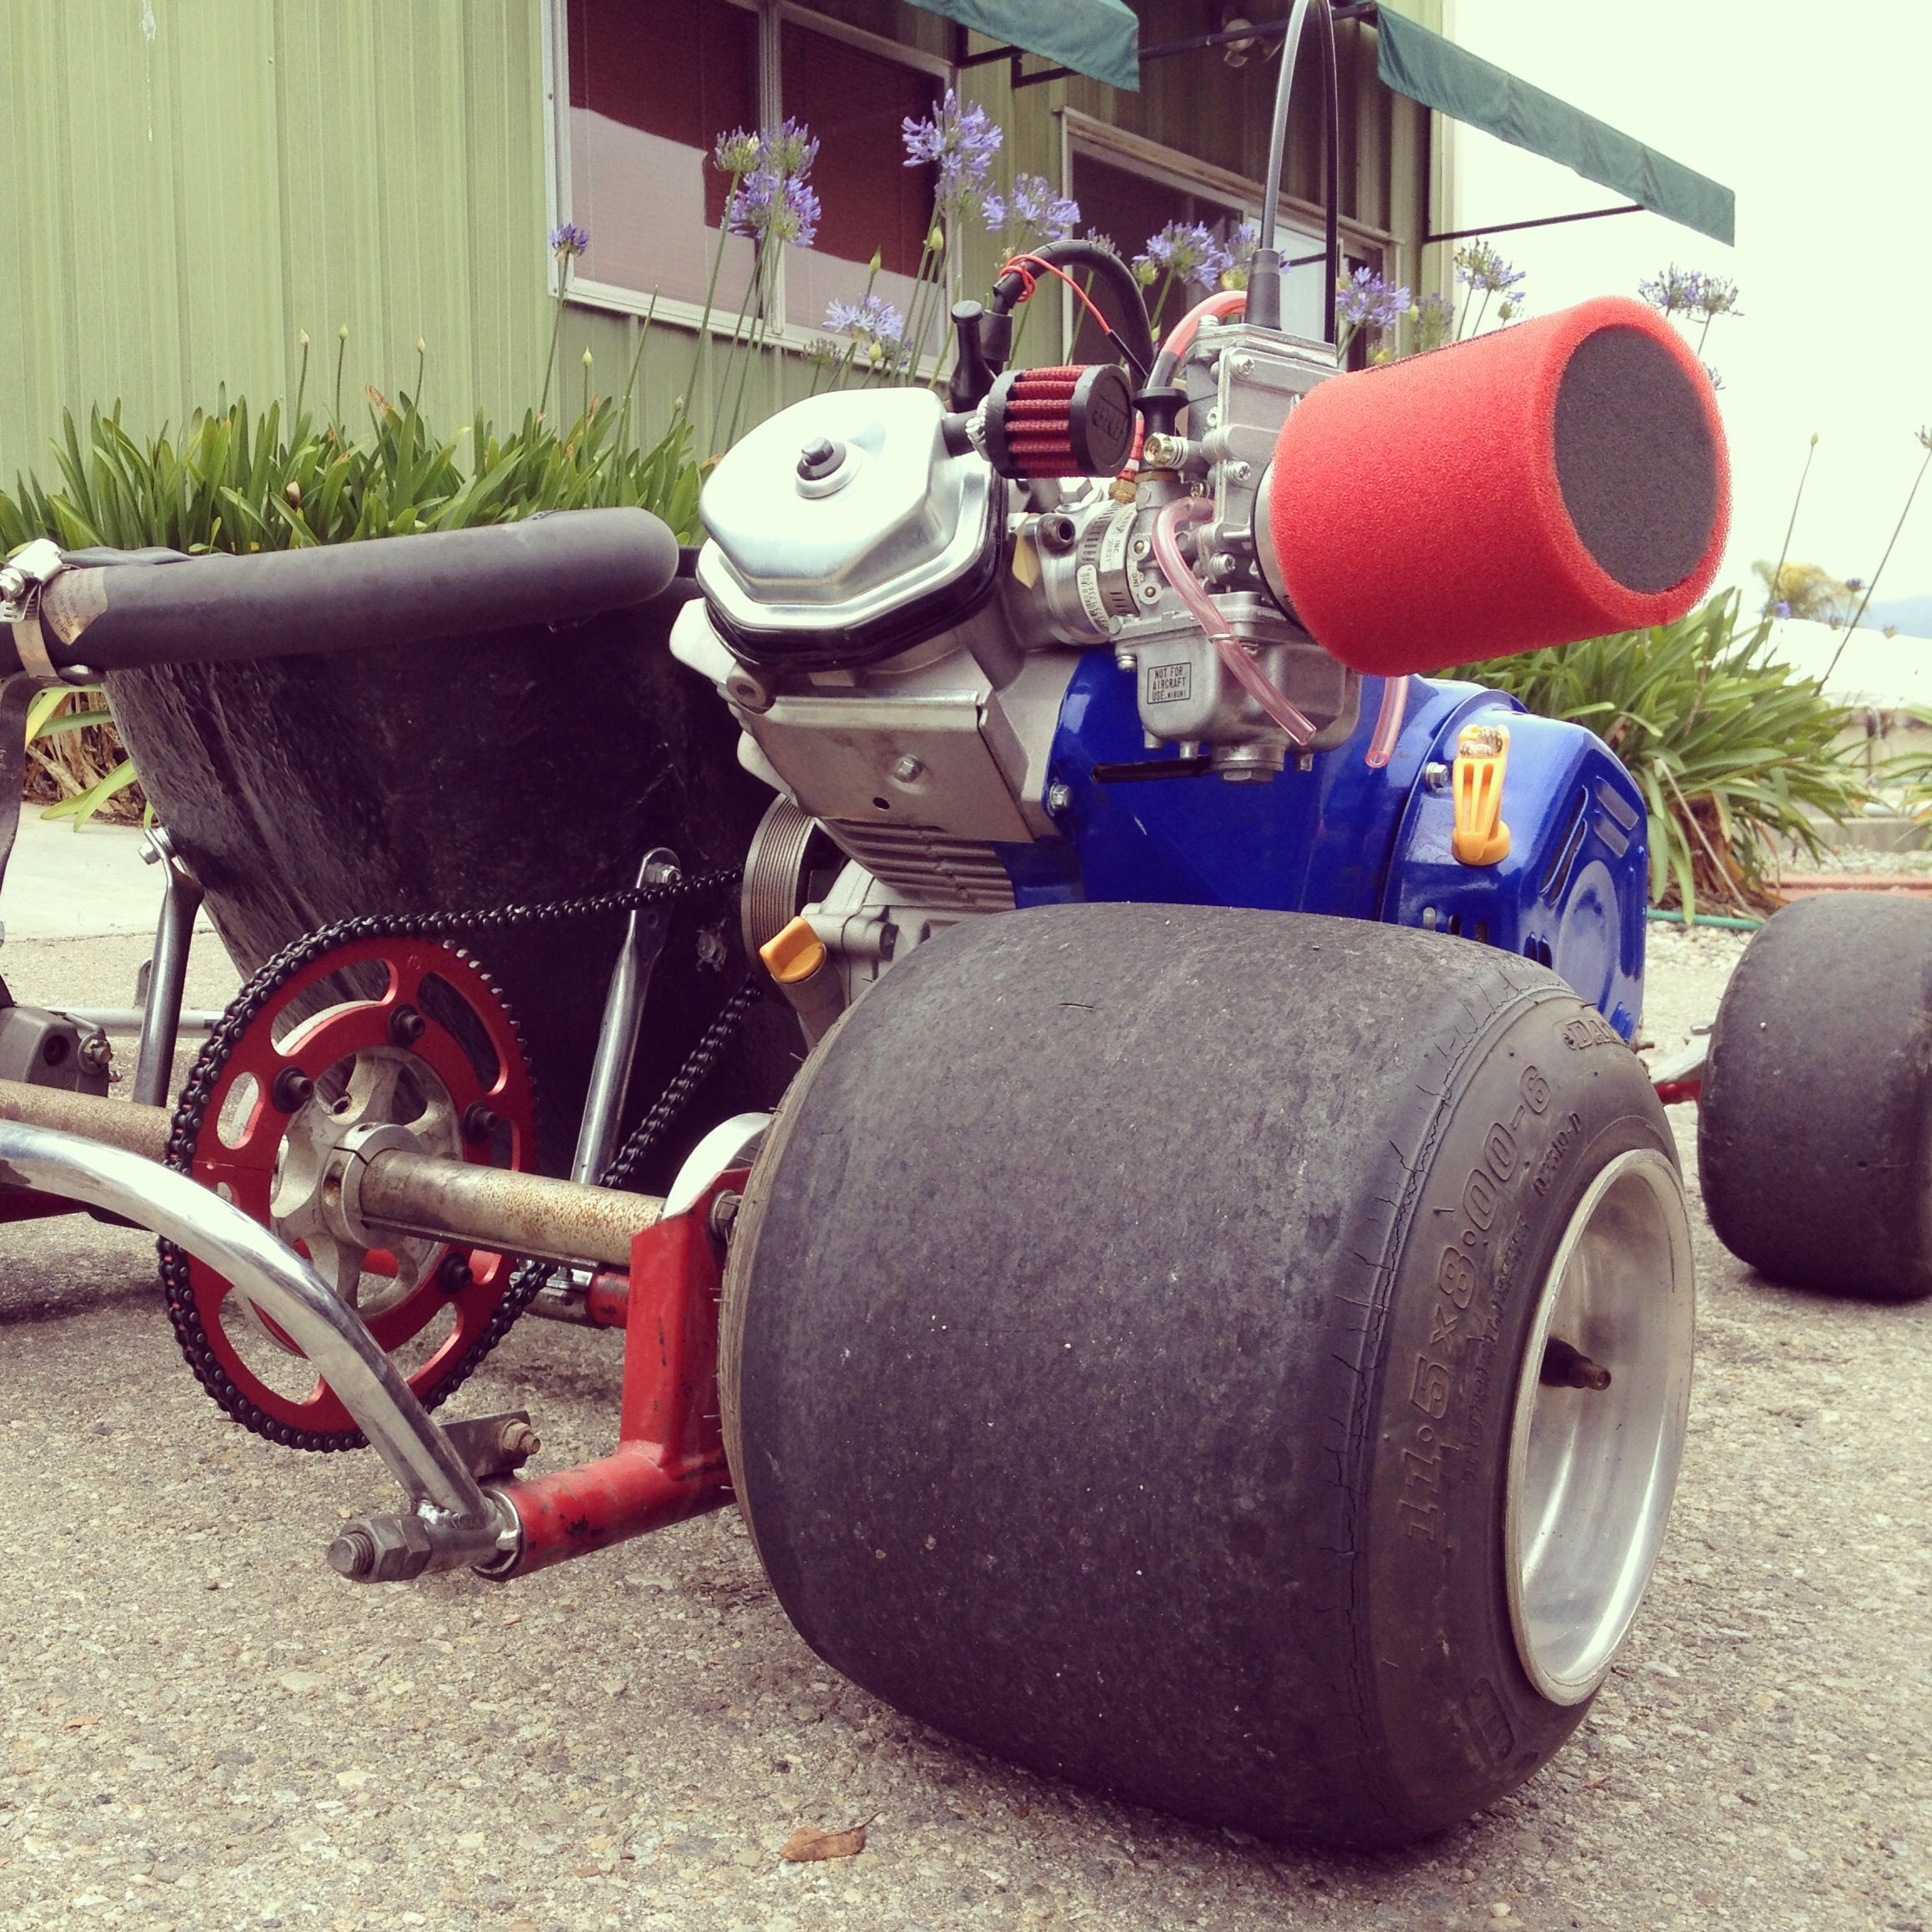 medium resolution of emmick kart with a big gx390 engine this engine has a big 360 cam roller rocker ported milled cylinder head and a 34mm flat slide mikuni carb